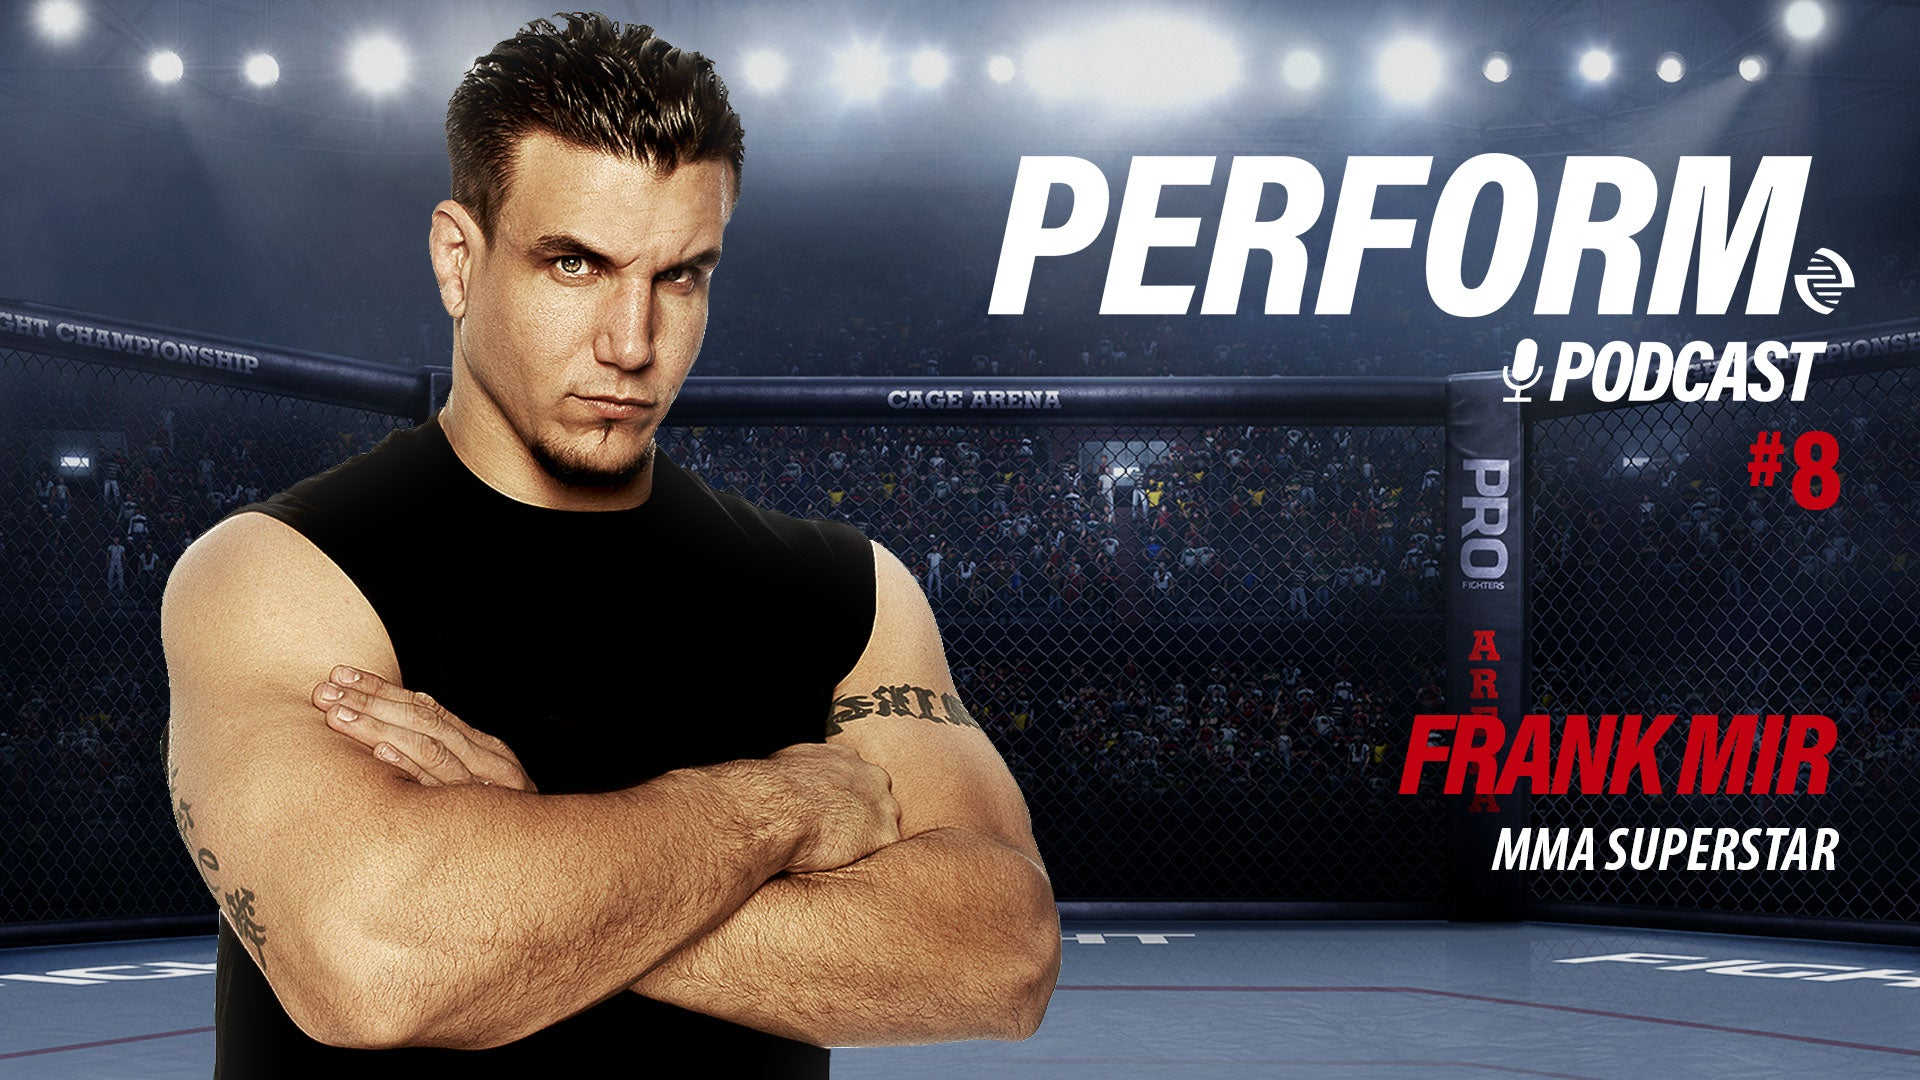 Perform Podcast Episode 008 - Frank Mir